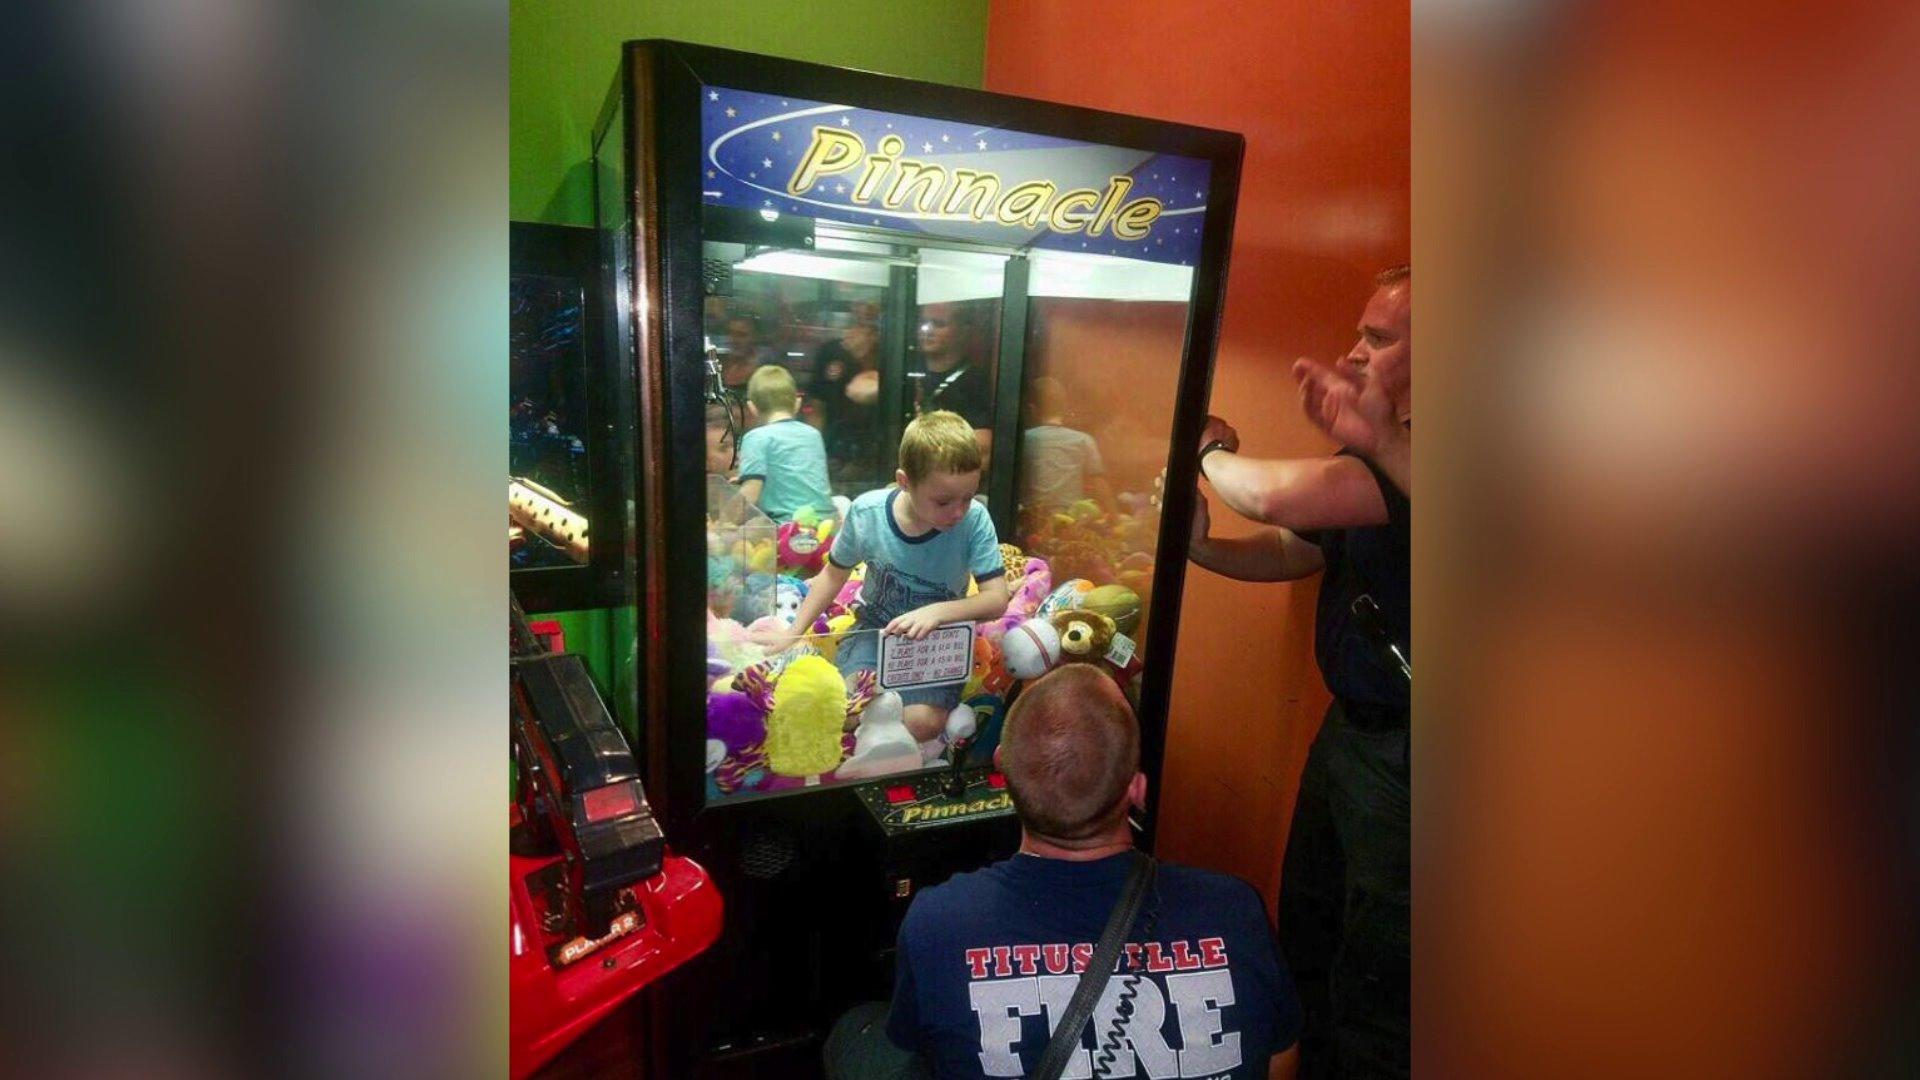 Florida boy trapped inside claw machine rescued by firefighters